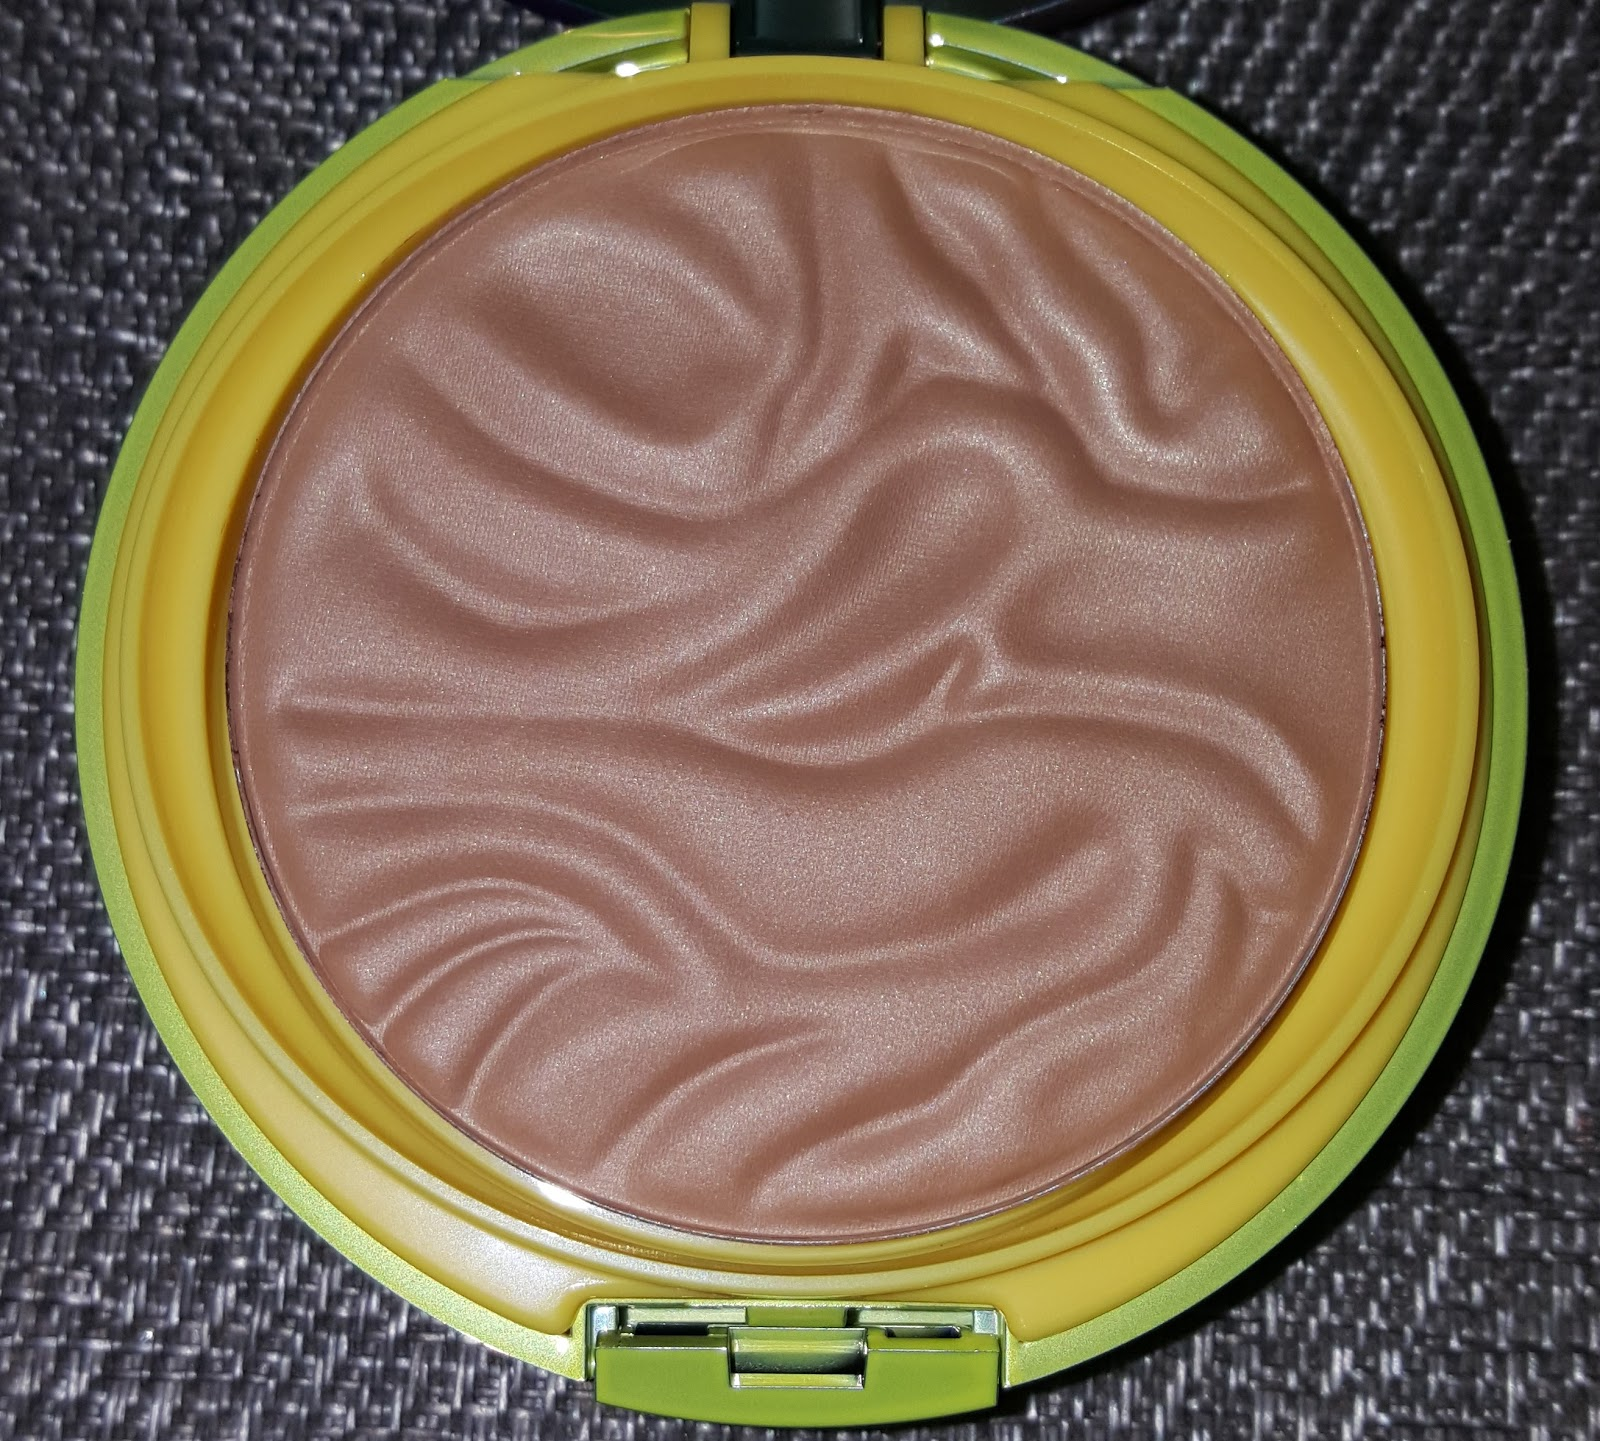 Leopard Lace And Cheesecake Review Physicians Formula